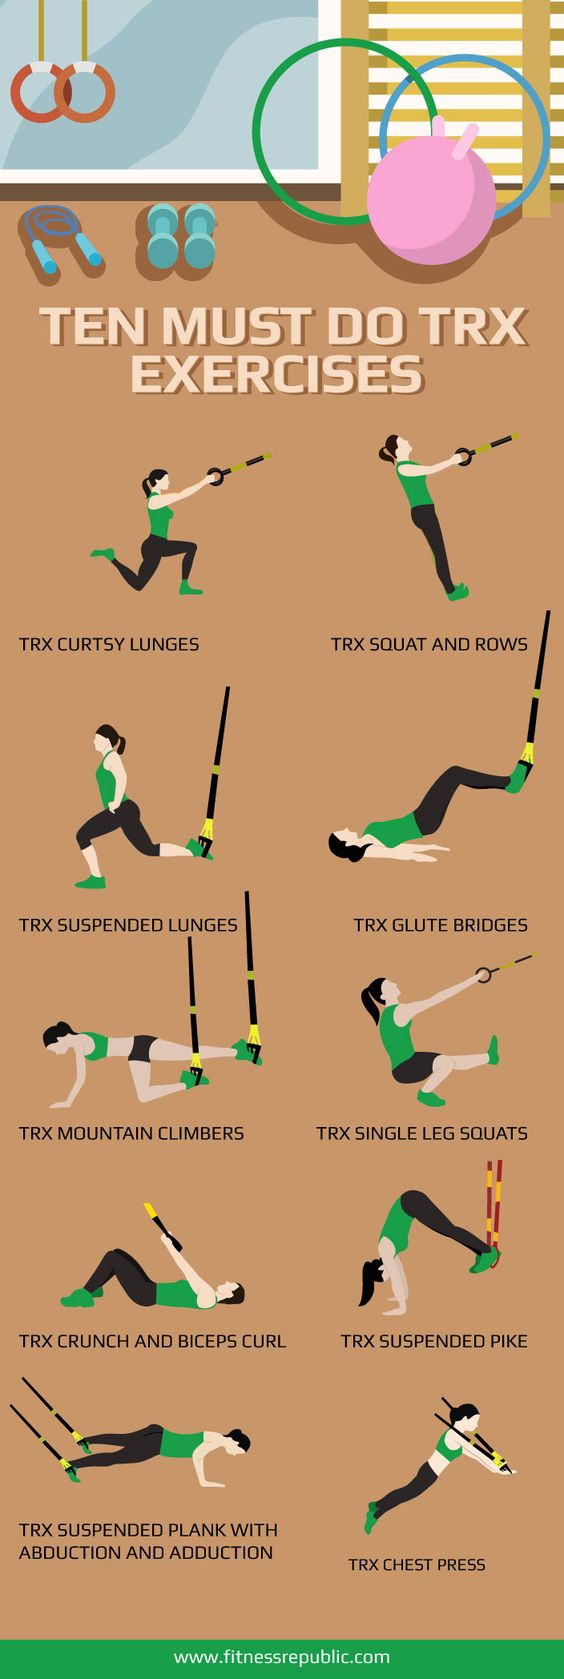 Ten Must Do TRX Exercises